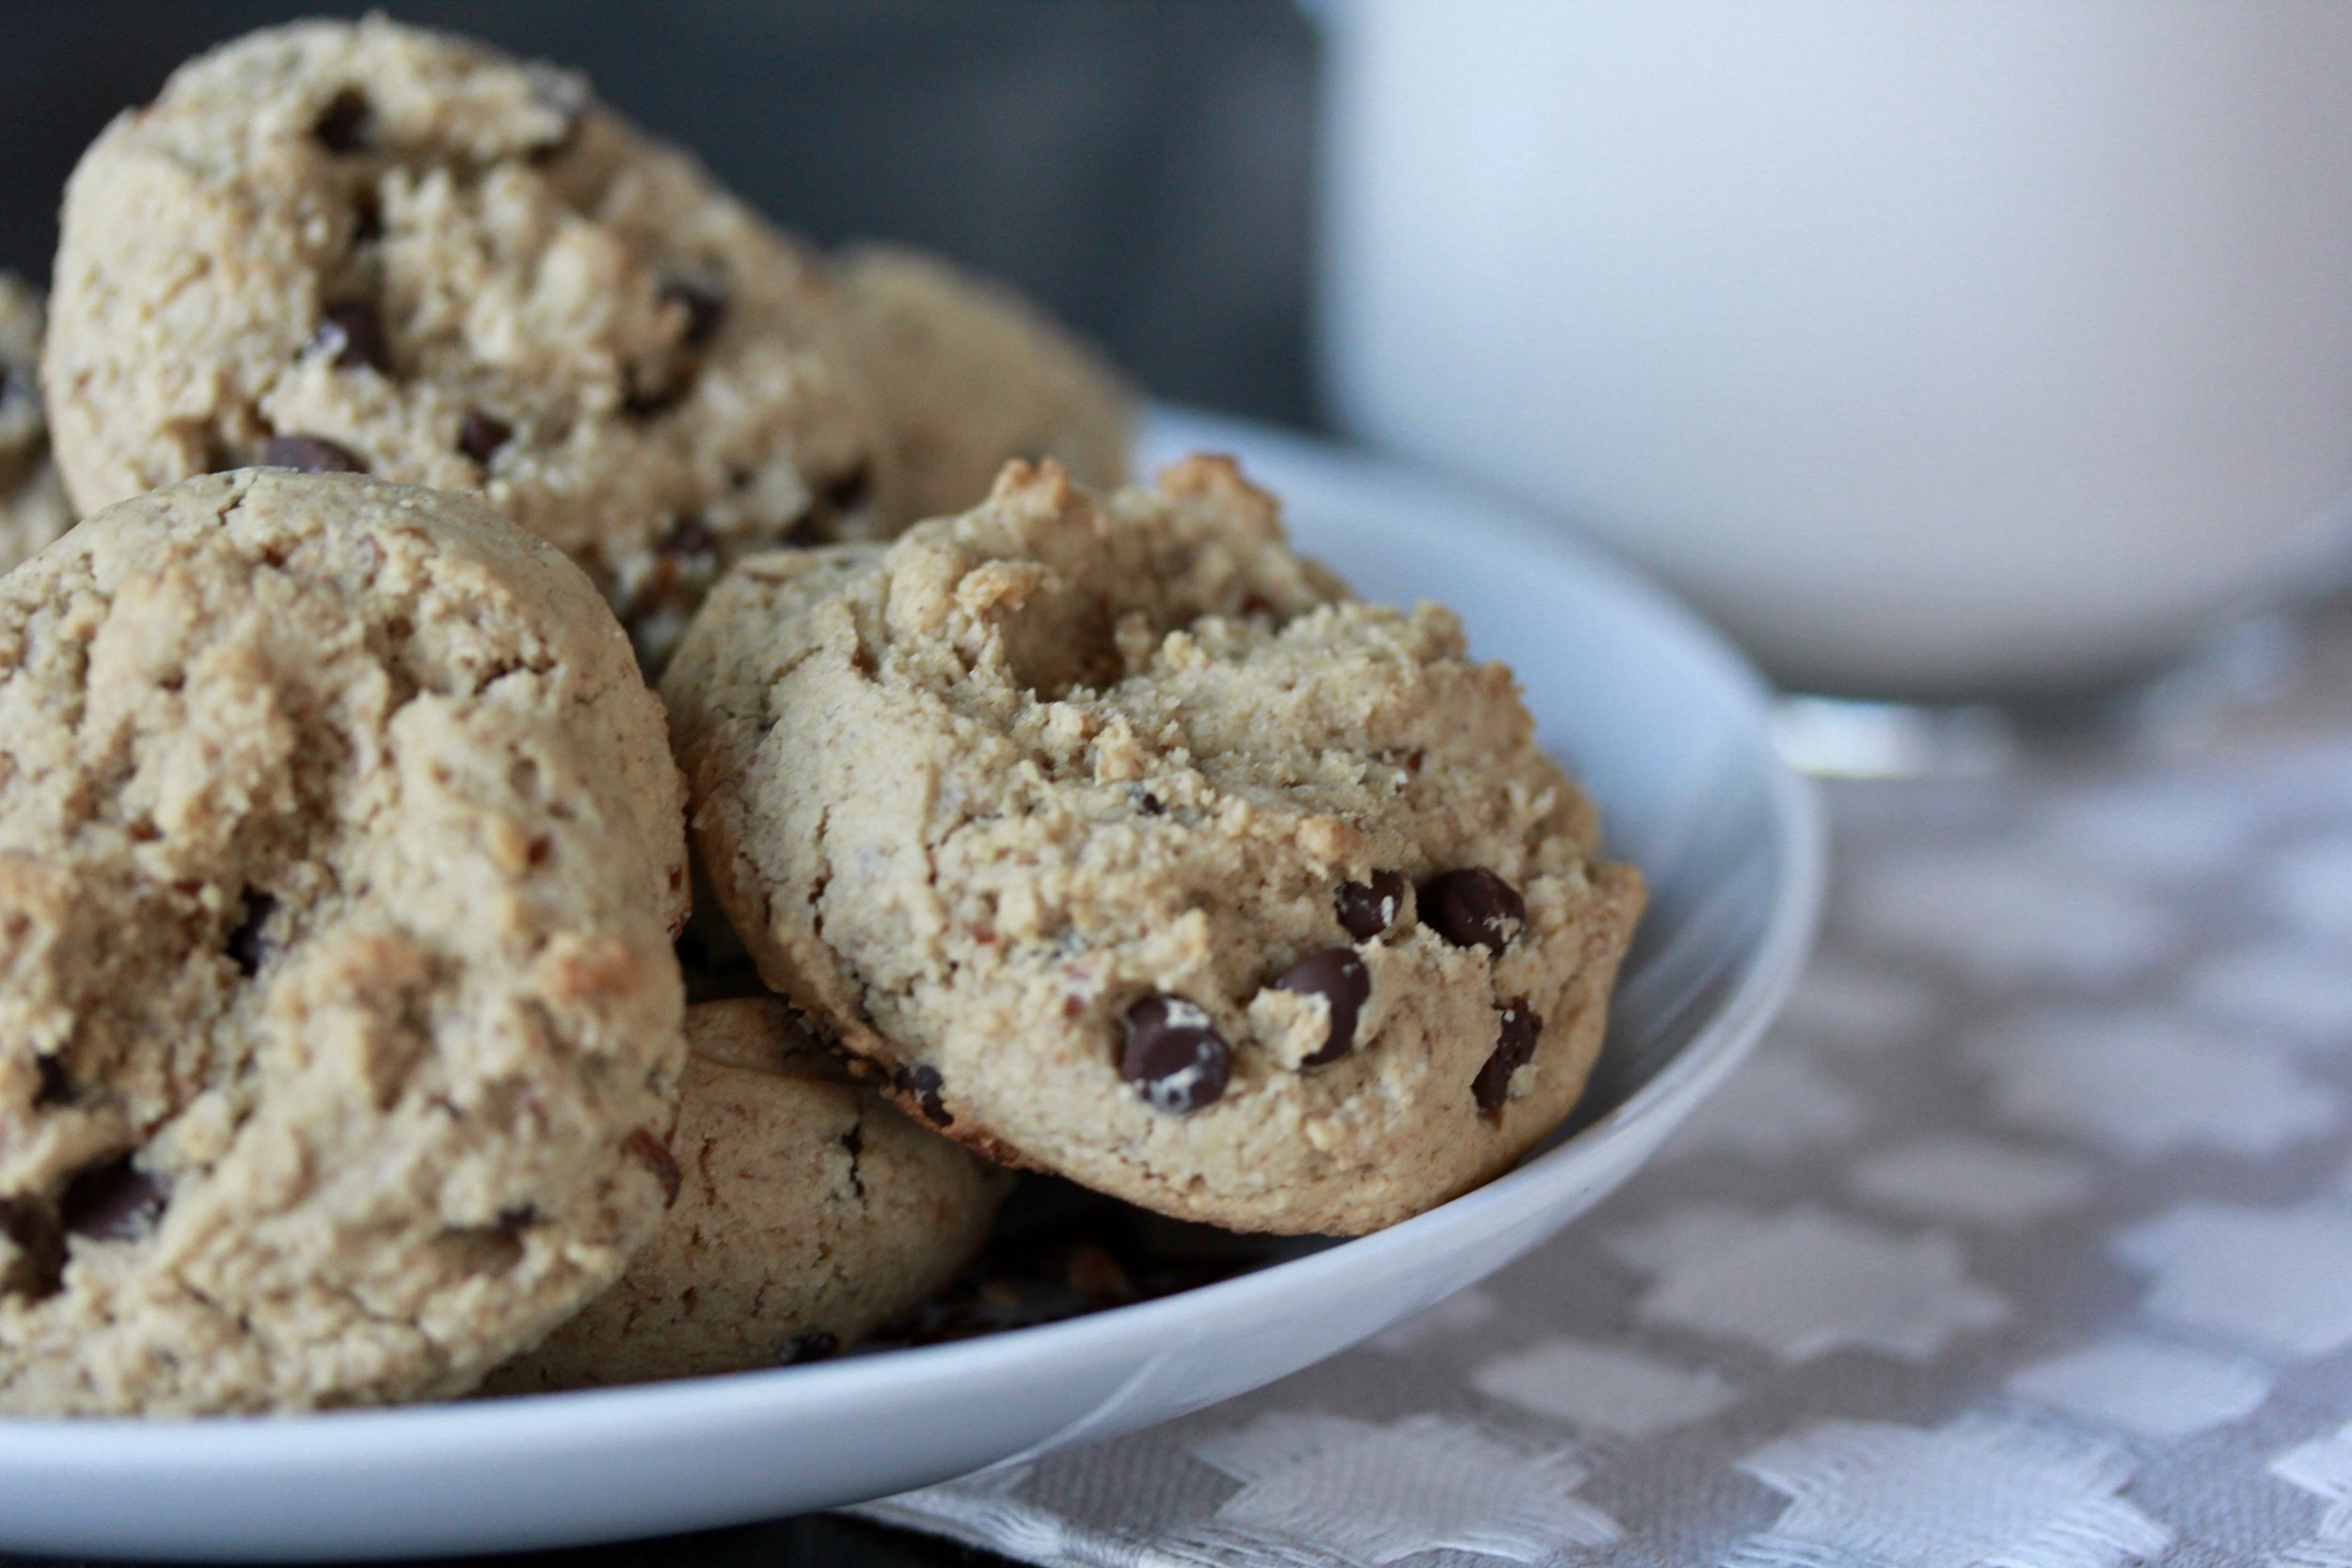 Chocolate Chip Cookies, Wholesome LLC, 3